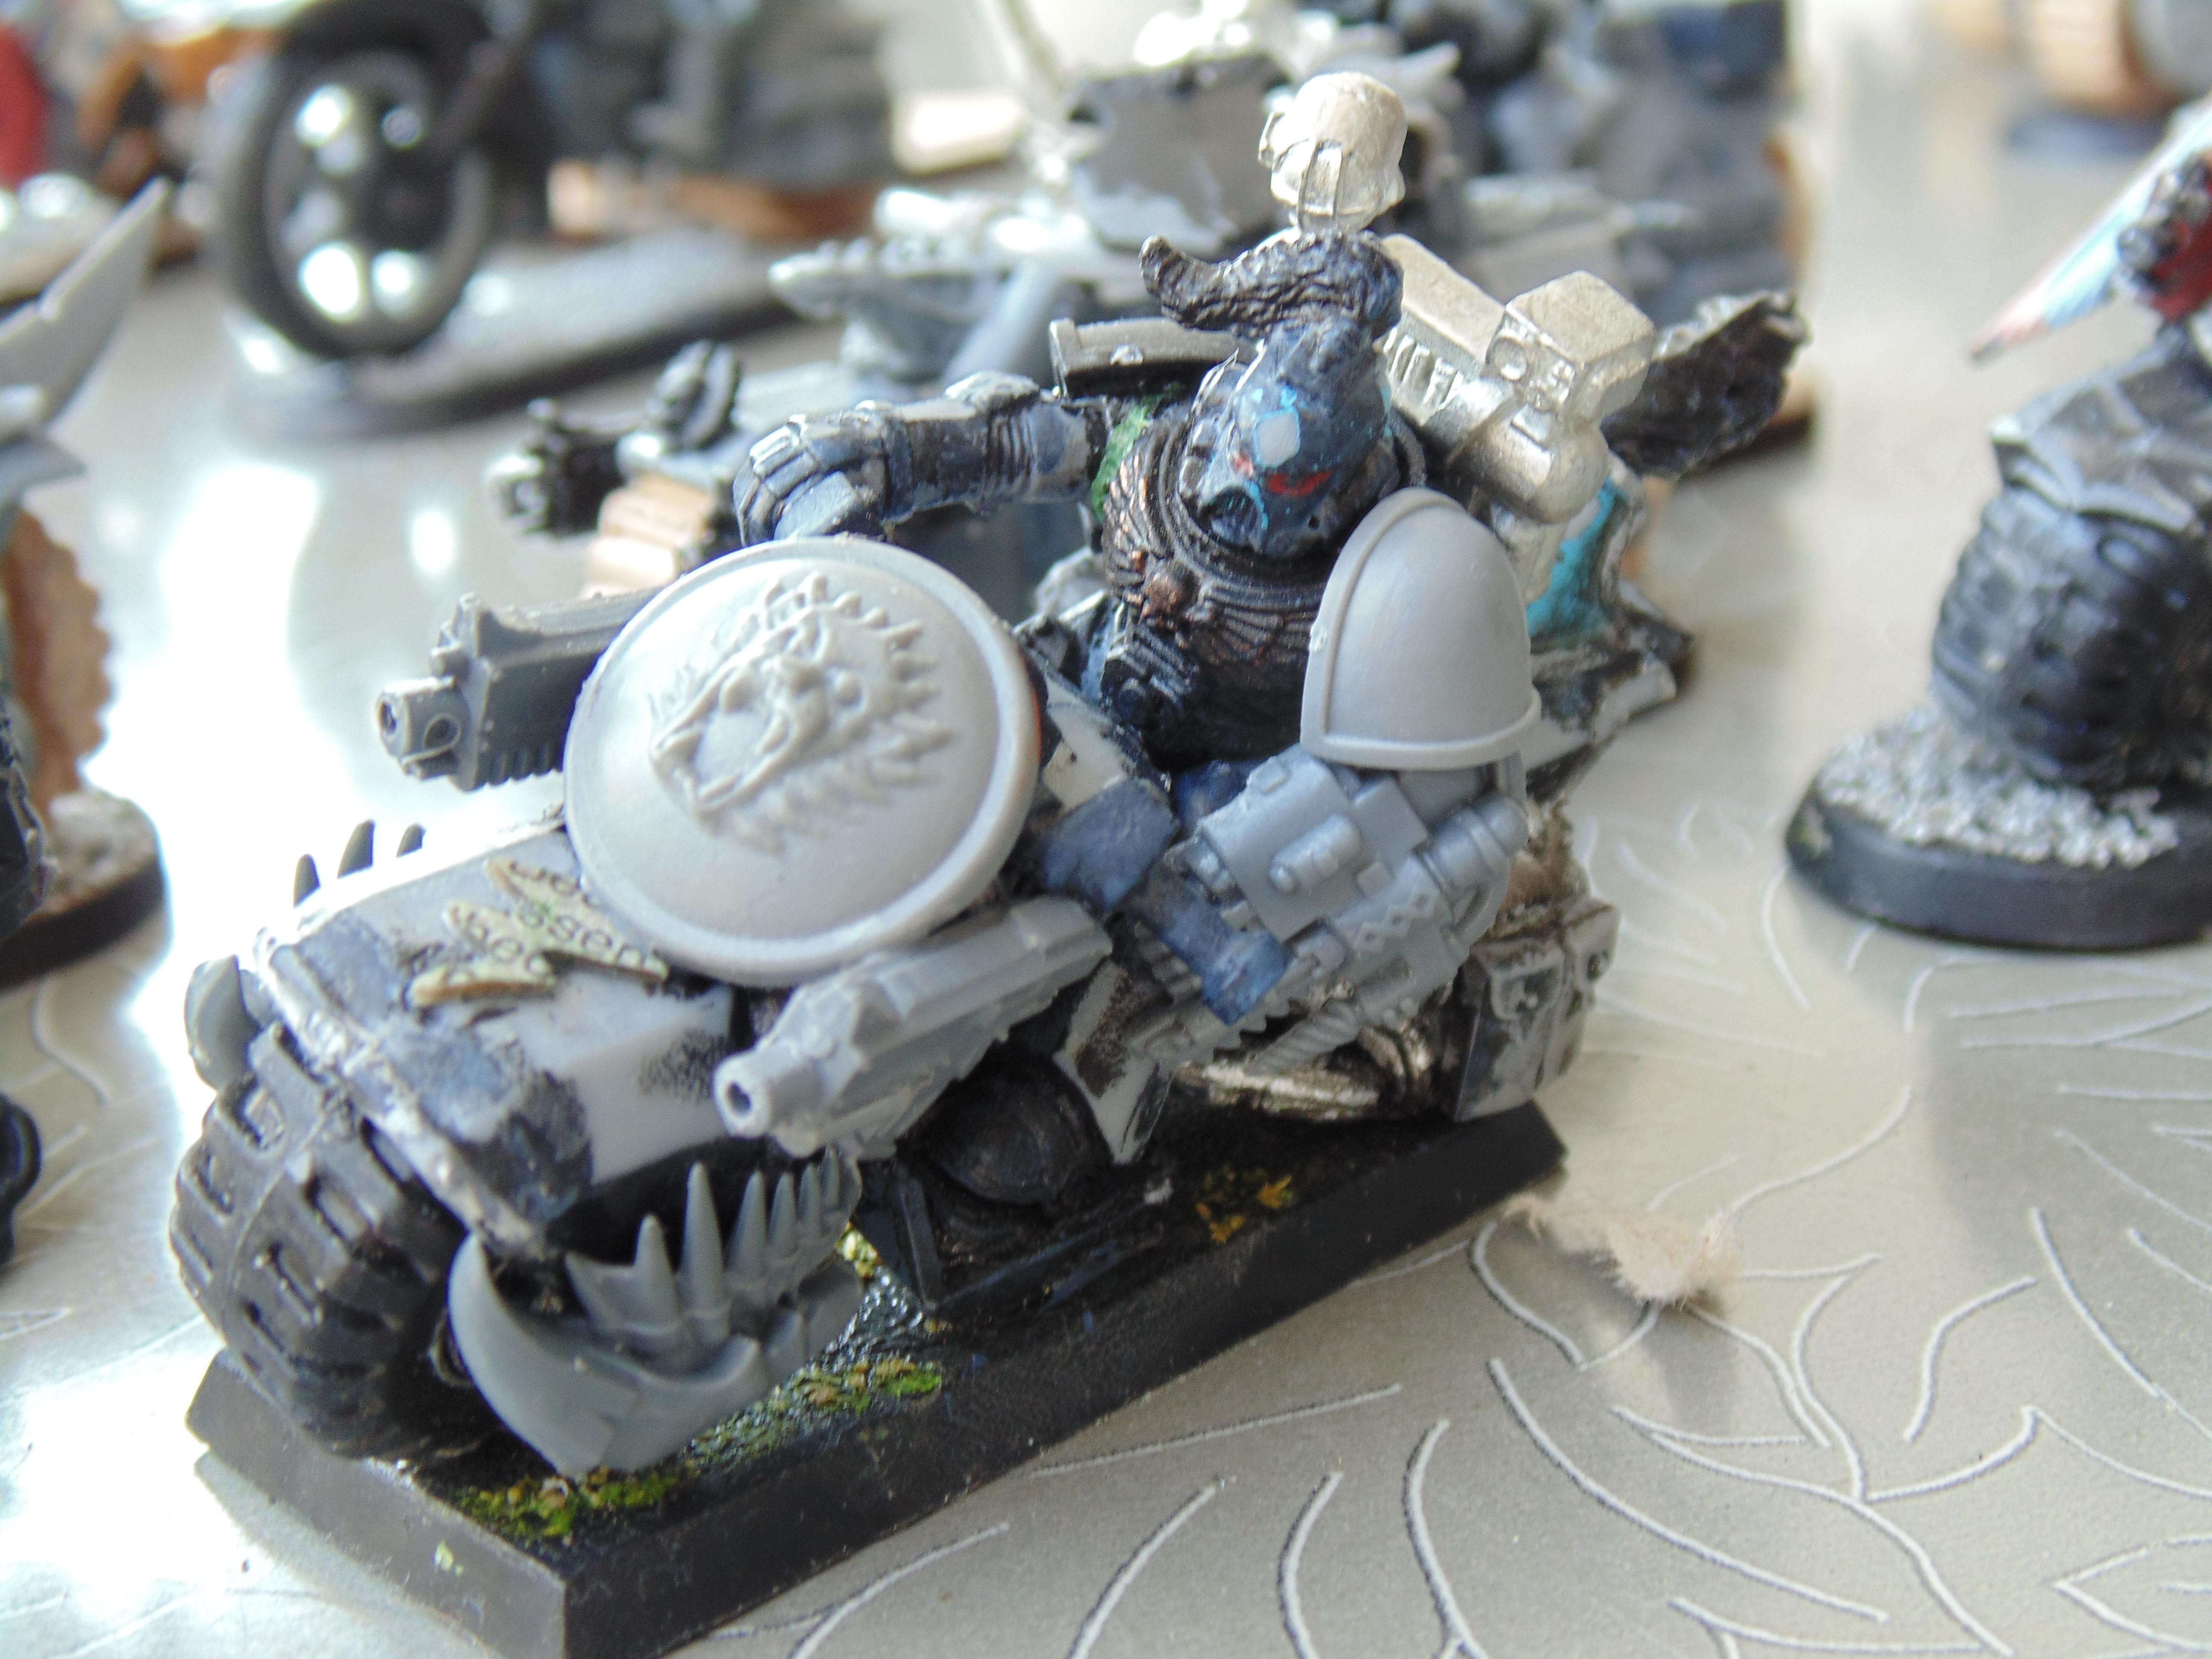 Army, Attack, Big, Bike, Blood, Chaplain, Conversion, Dreadnought, Epistolarii, Huge, Jubai, Kharn, Old, Scars, School, Space Marines, Test, Trike, Trikes, White, Work In Progress, Ws